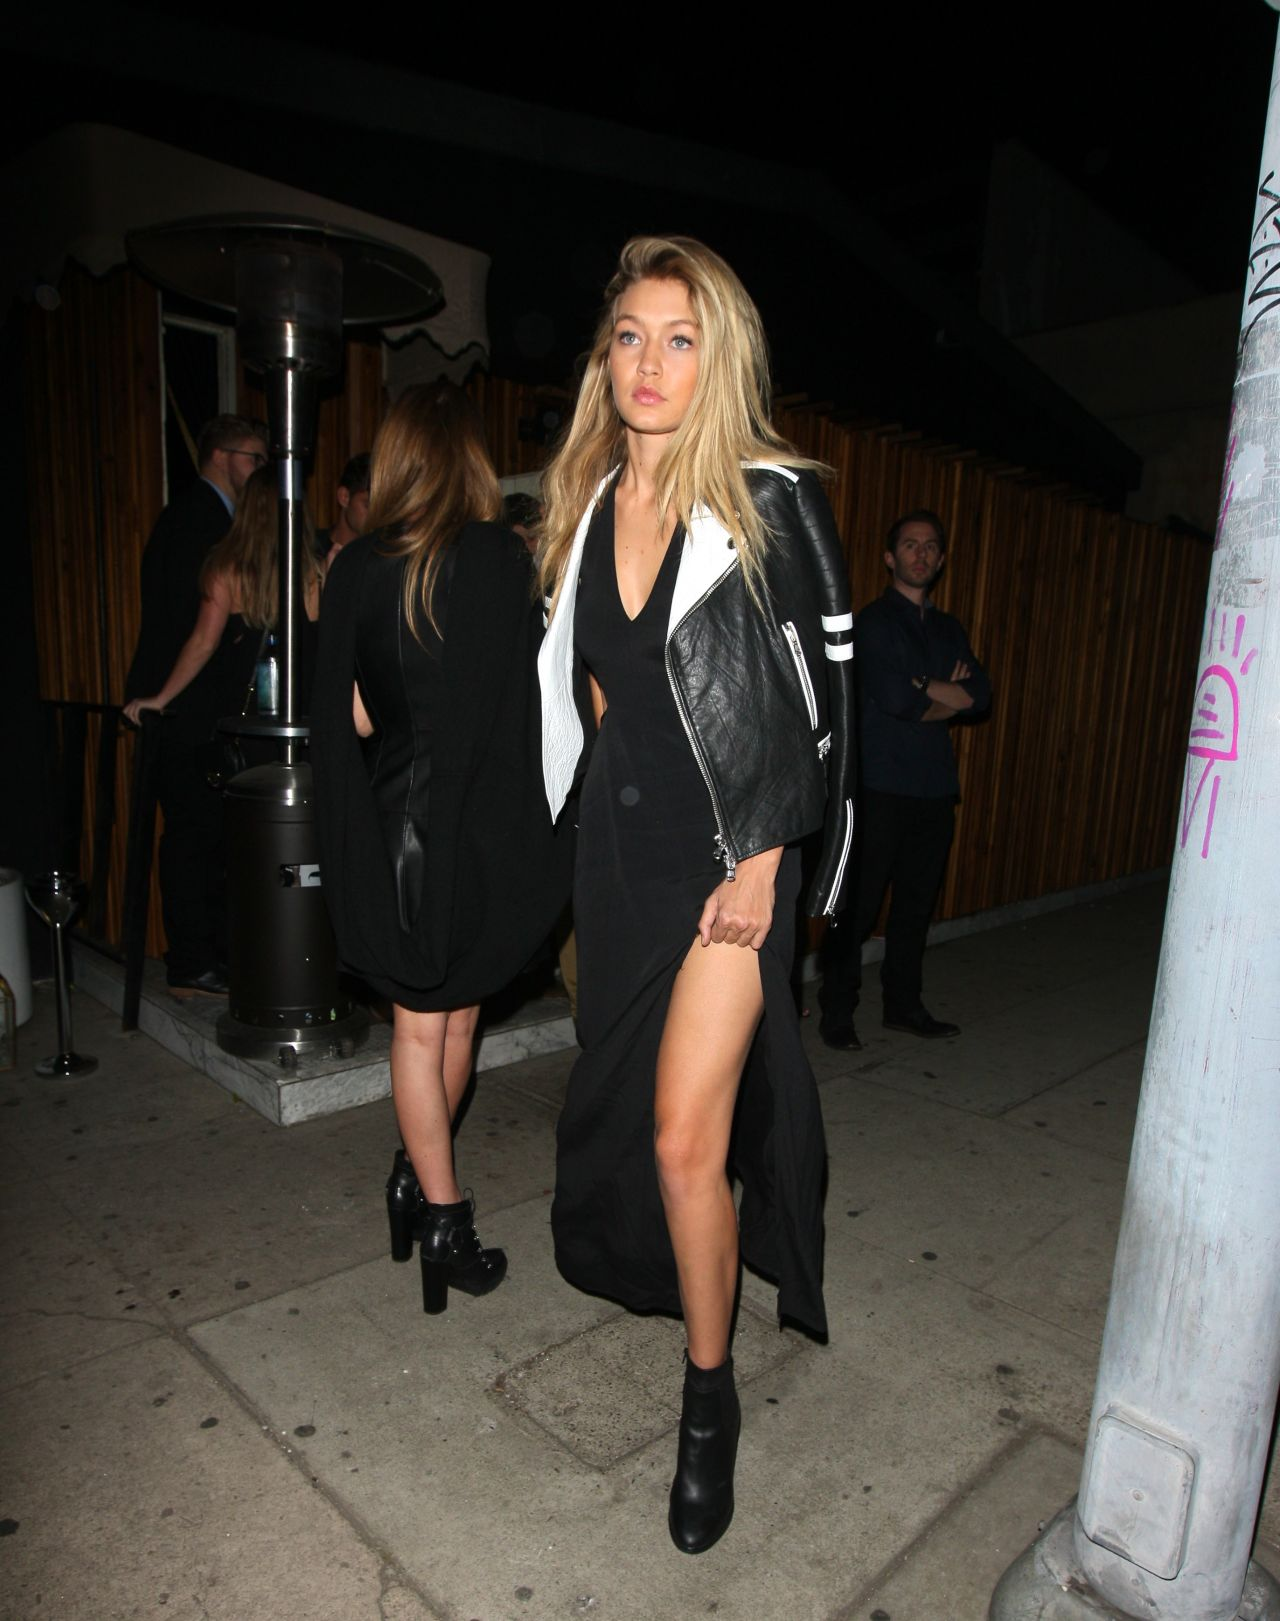 Gigi Hadid Night Out Style - Leaving the Nice Guy Nightclub in West Hollywood, January 2015